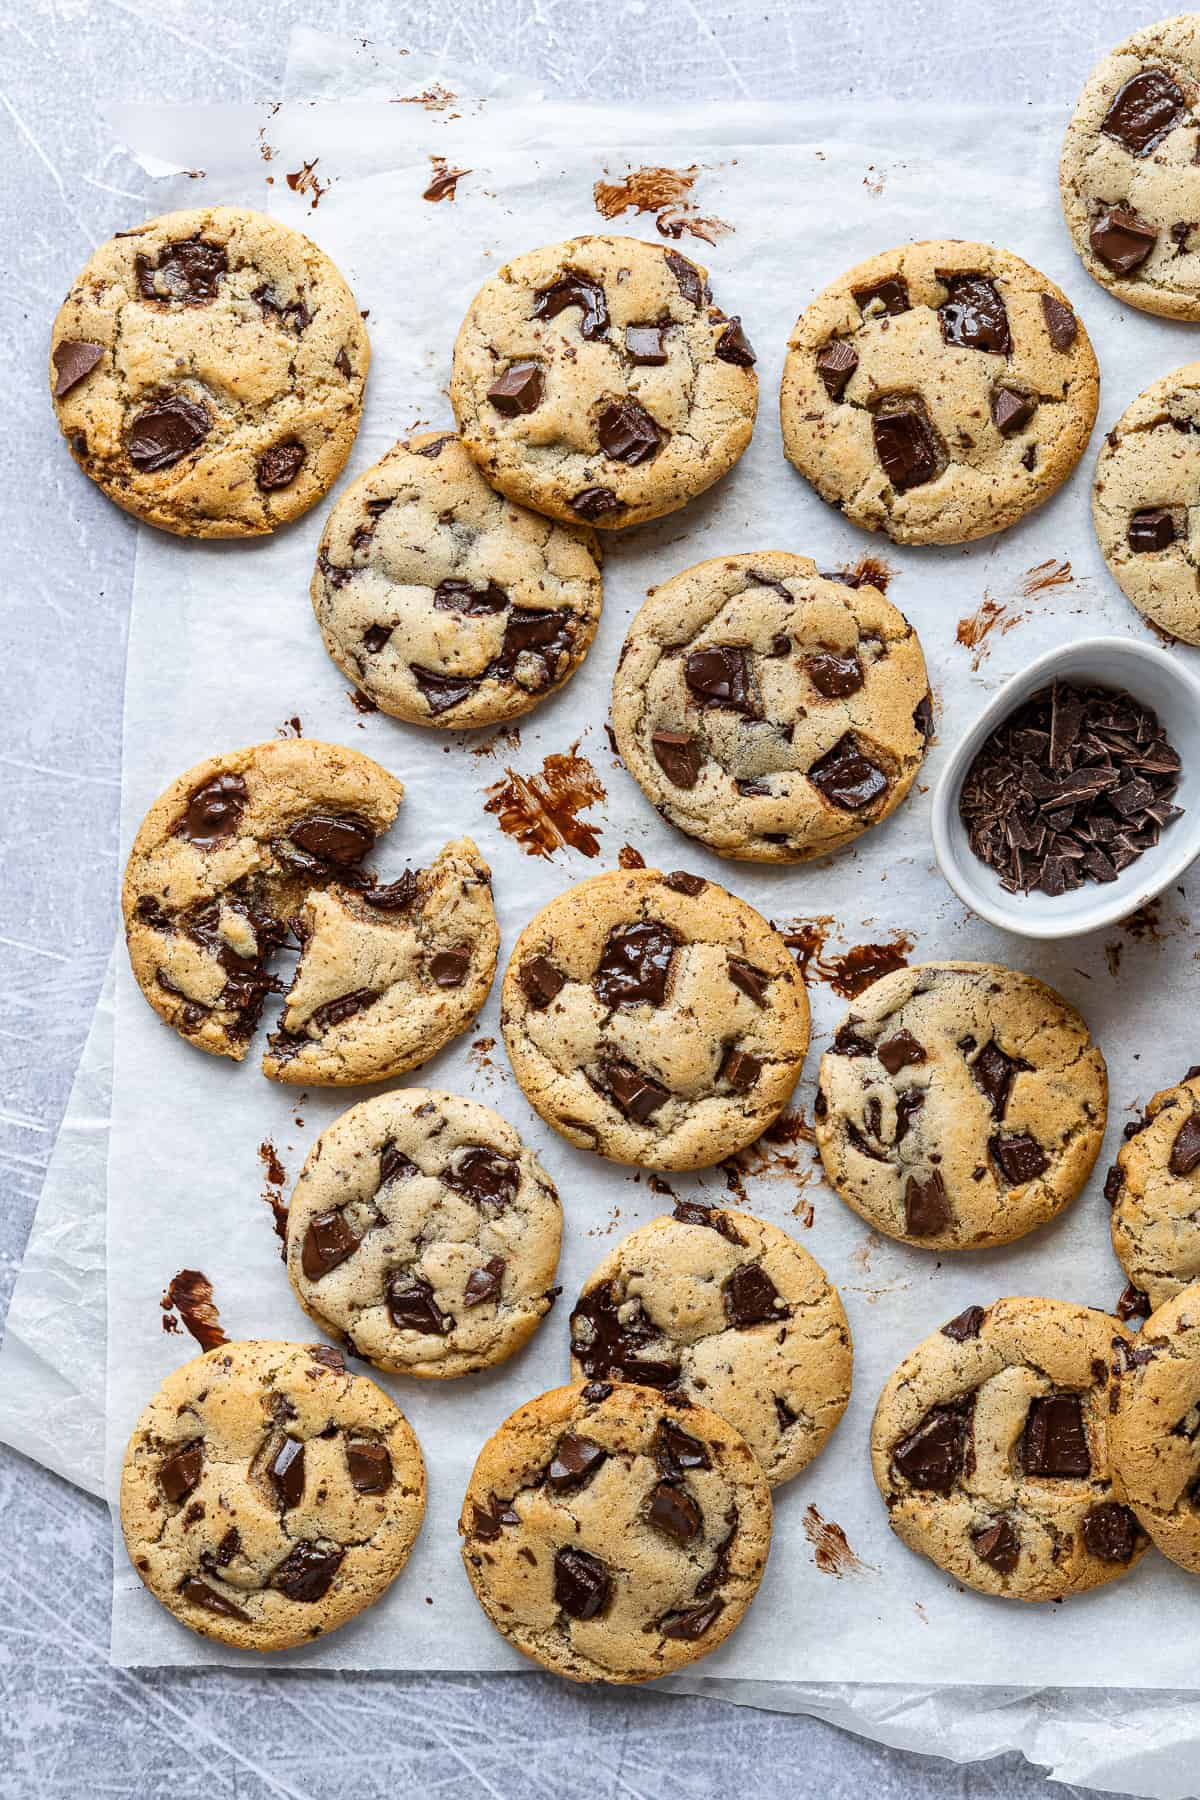 Vegan olive oil chocolate chip cookies and a bowl of chopped chocolate on a sheet of white baking parchment on a metal surface.